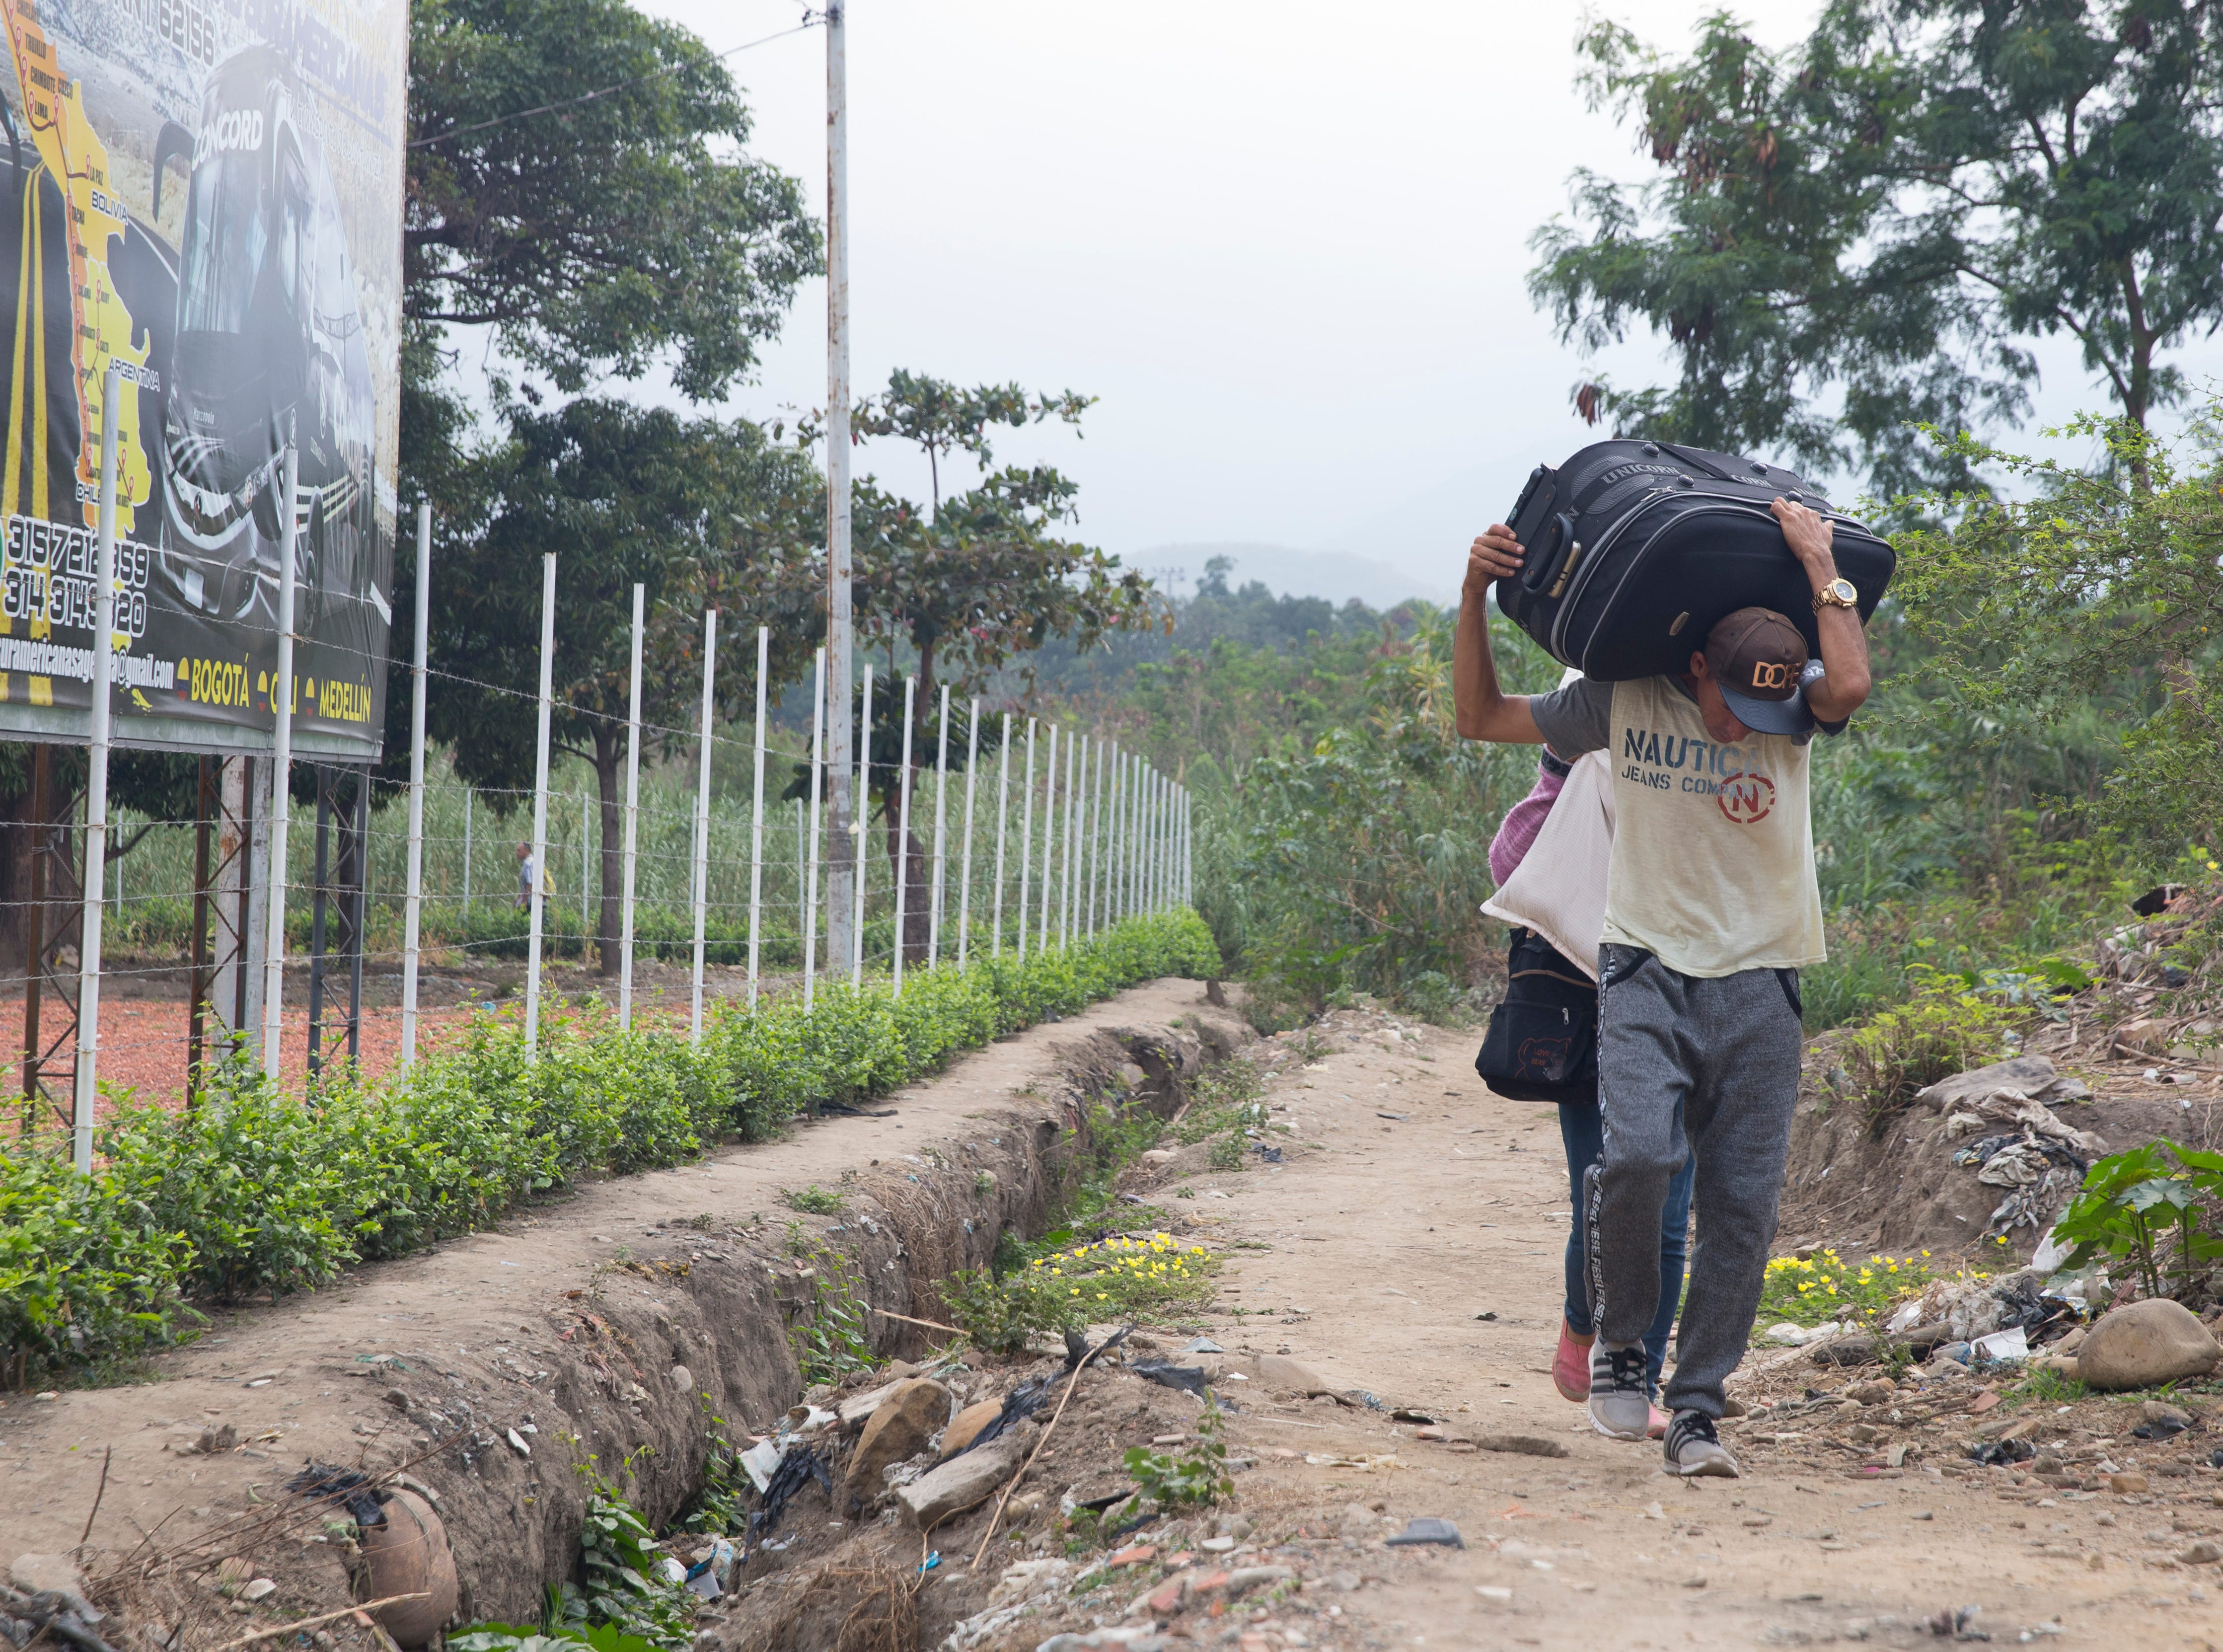 Migrants along the Colombia-Venezuela border sprint with their luggage hoisted over their heads after crossing illegally by boat 50 meters from the legal border checkpoint on Feb 6, 2019. Many migrants are forced to cross illegally because it's become nearly impossible in Venezuela to obtain documents like passports and IDs.